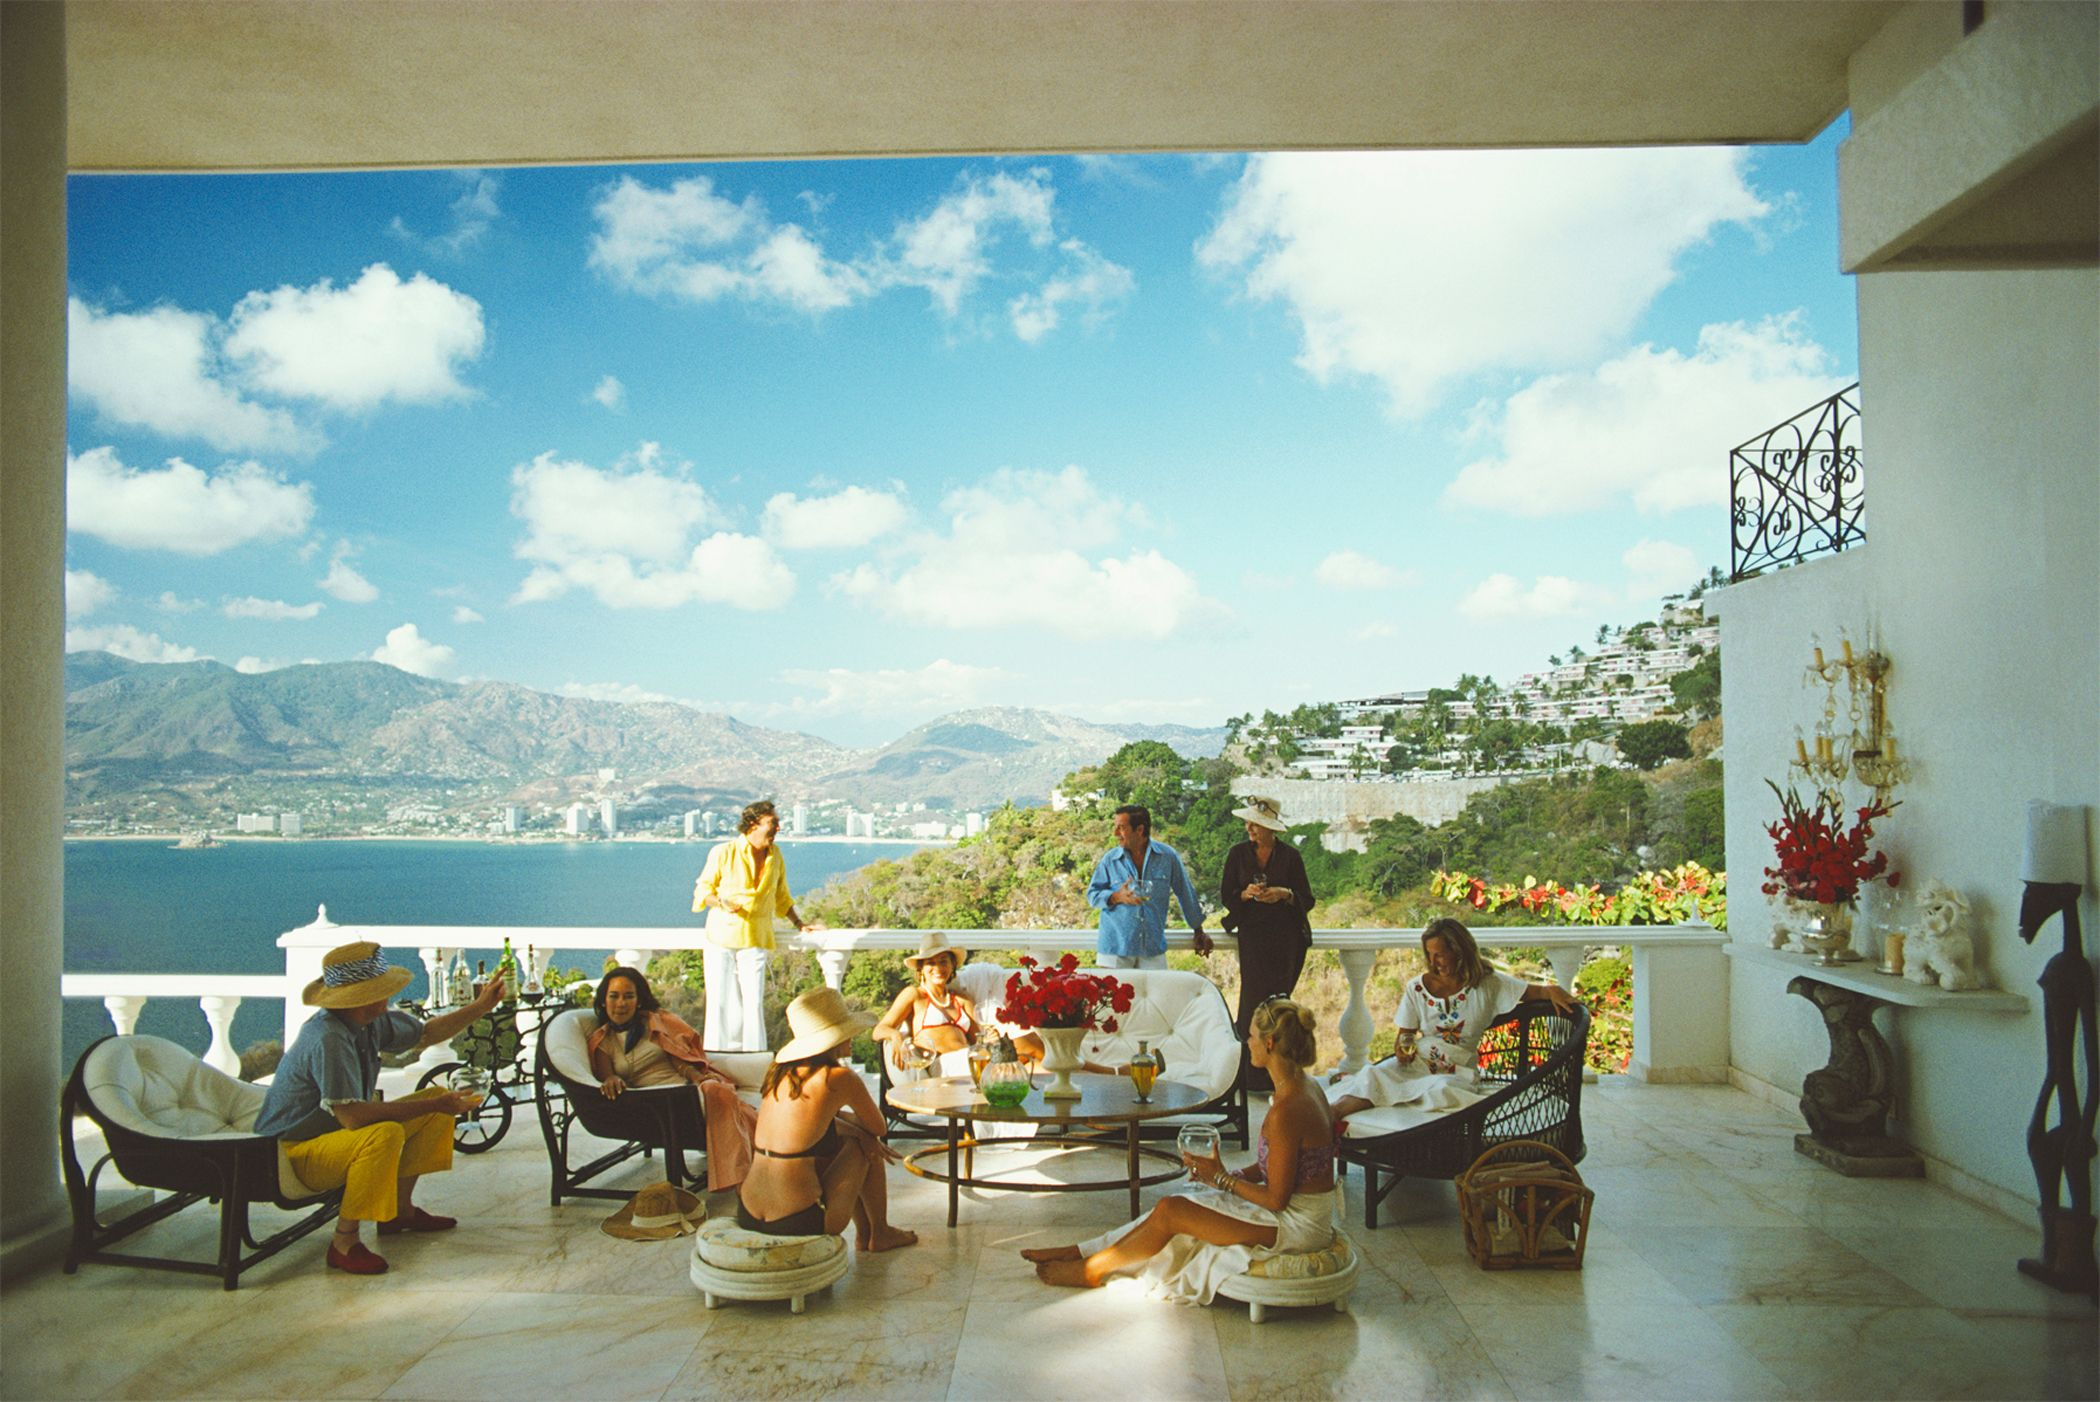 GUESTS AT VILLA NIRVANA (Slim Aarons)